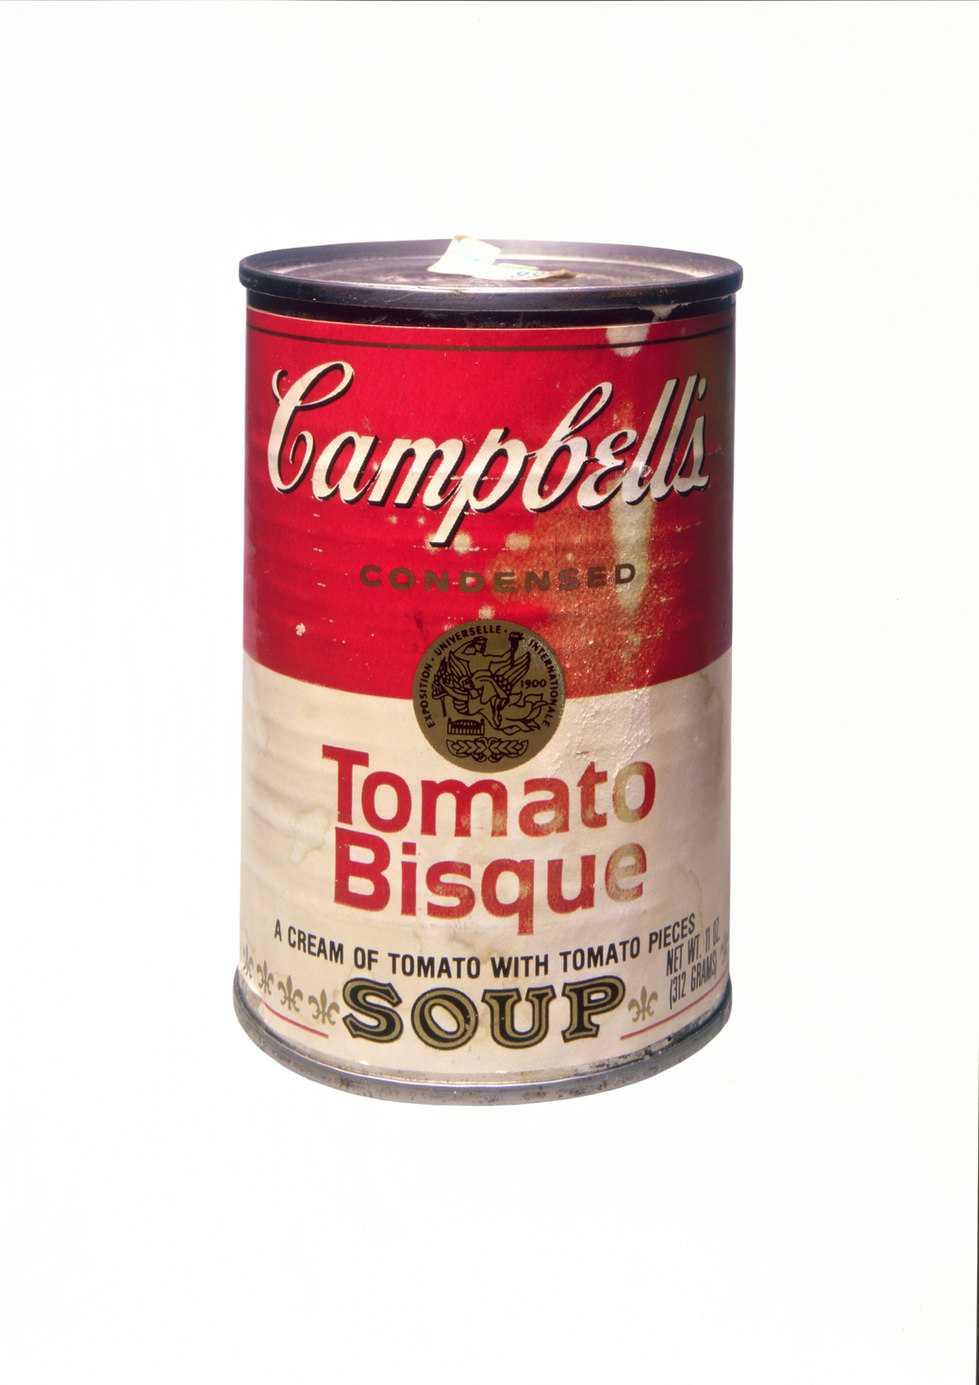 In 1987, Gamble got his most memorable assignment. Andy Warhol had just died and Sotheby's was planning an auction of his estate. Warhol manager Fred Hughes contacted Gamble through the Observer and hired him to shoot the house. Left to shoot in the untouched house for 10 days, the photographer captured images that spoke less about the artist's fame and influence and more about the man. In these works Mr. Gamble offers a glimpse into the private life of an artist whose impact on art, society and popular culture is undeniable and probably incalculable.